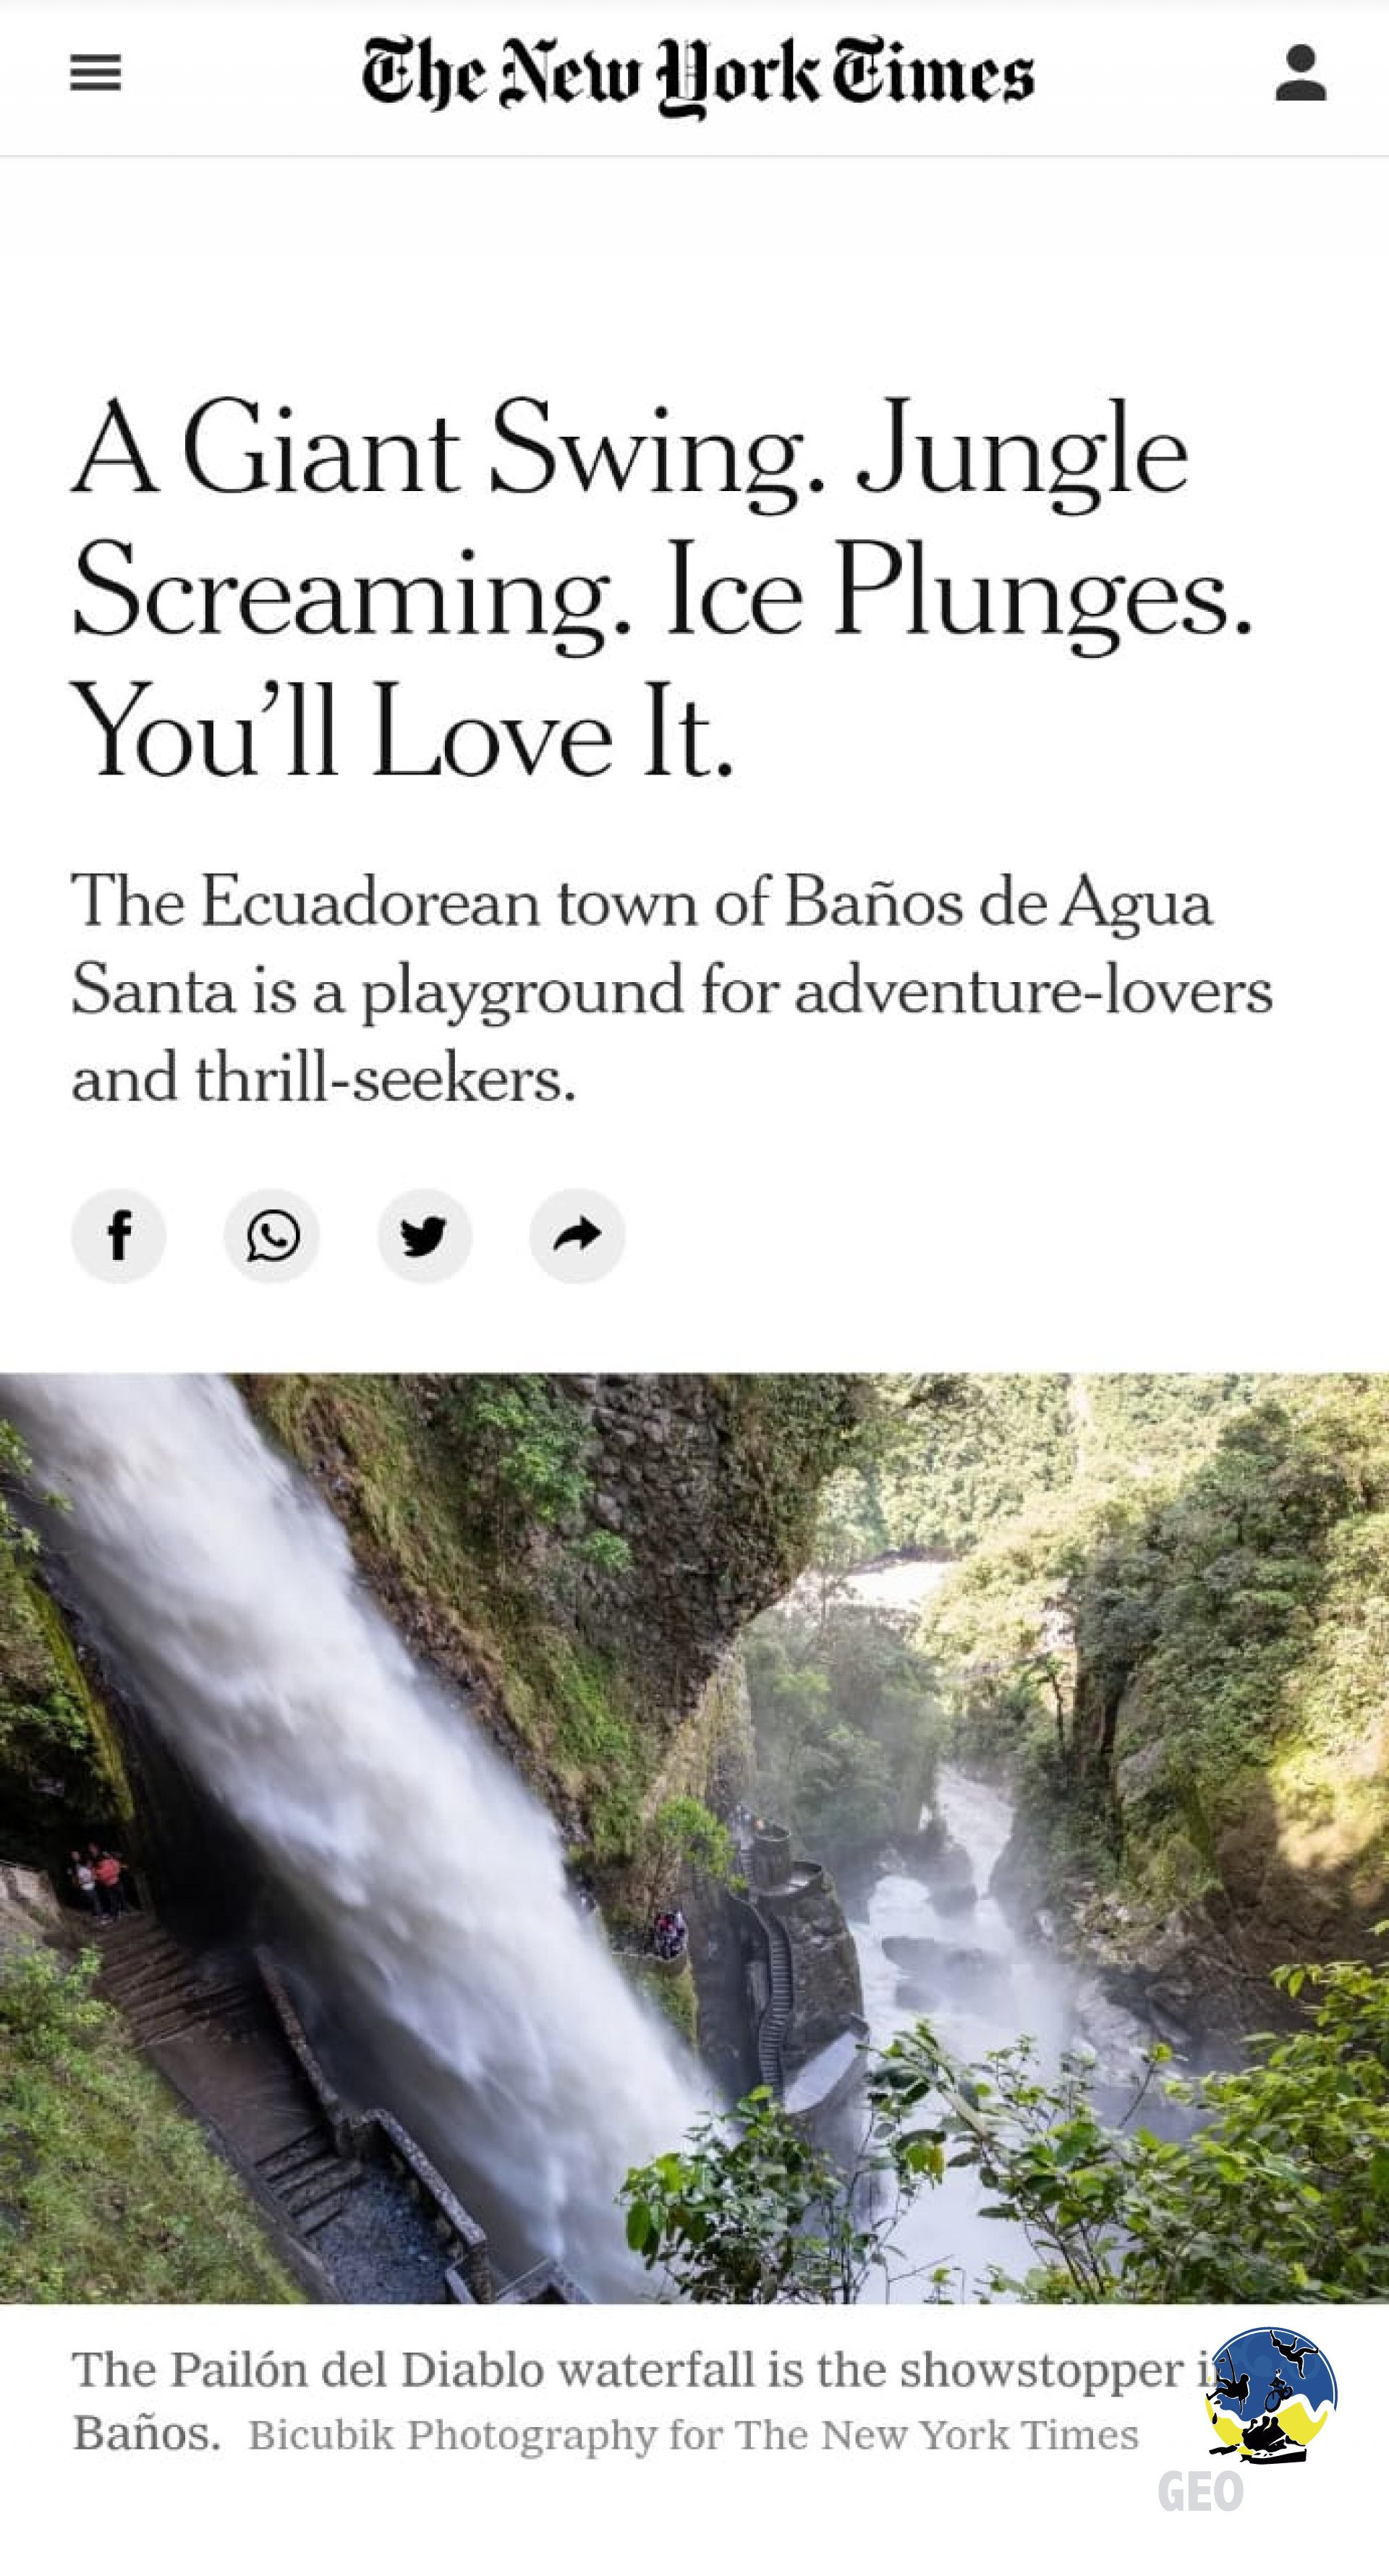 Foto Geotours is in an article in the New York Times